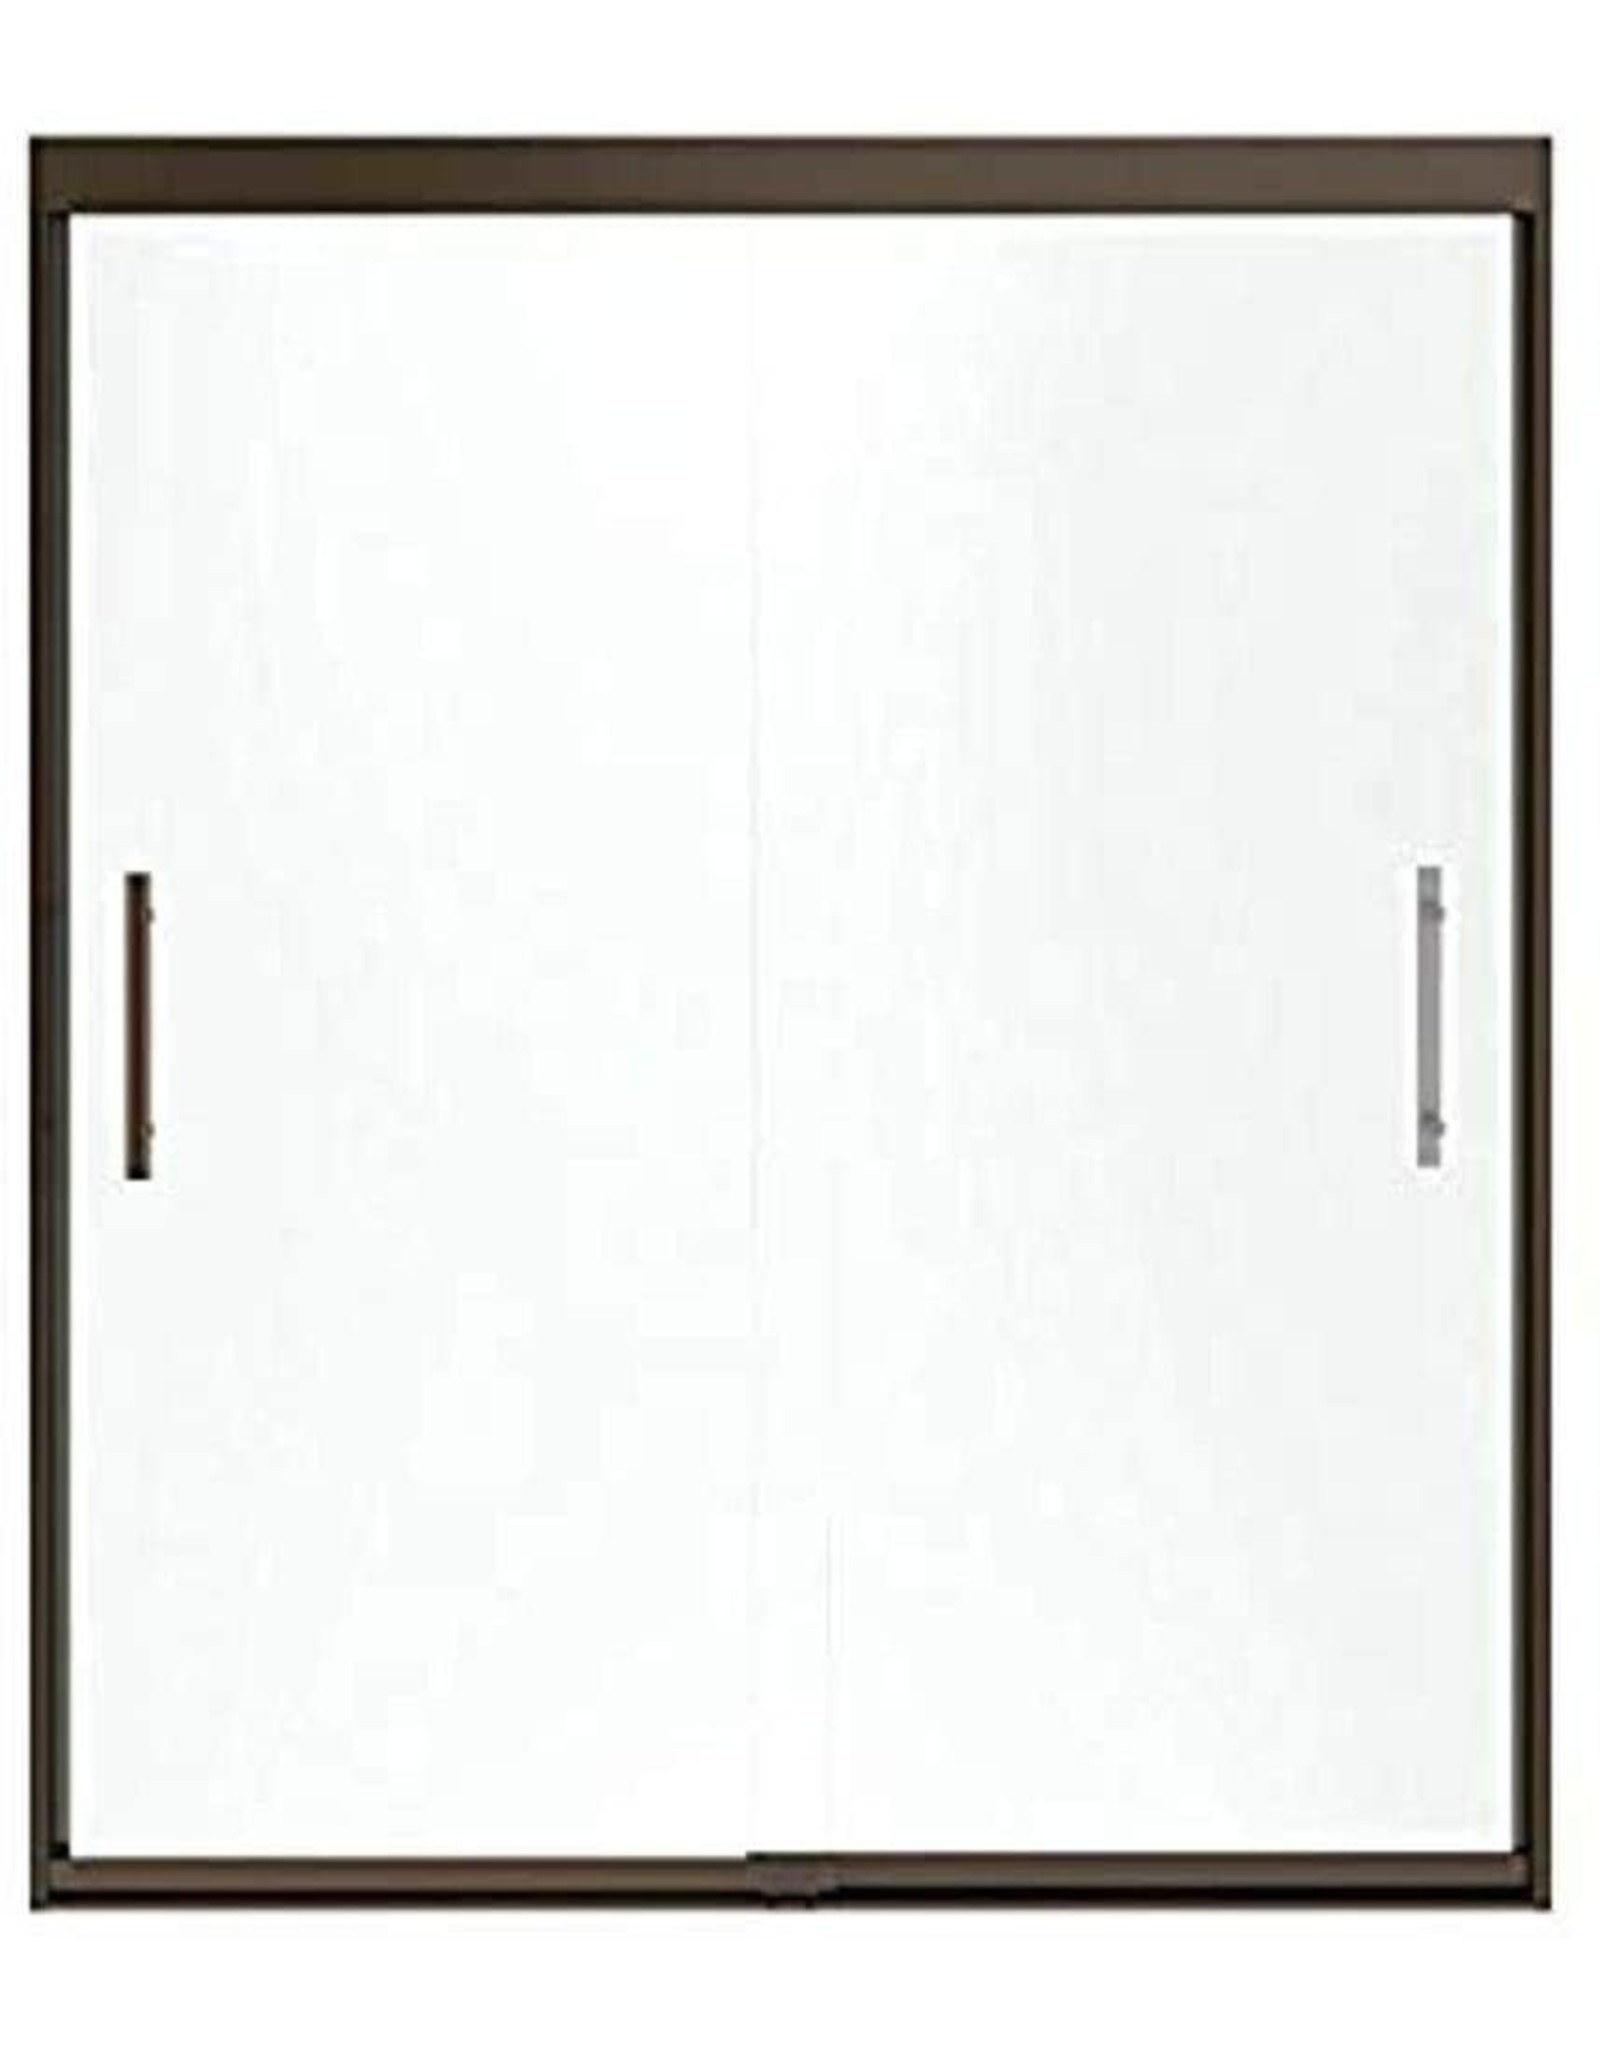 Sterling Plumbing Sterling Plumbing 547808-48N-G03 Finesse 44.6 To 47.6-In X 70.1-In Frameless Sliding Alcove Shower Door With Frosted Glass, 0.31-in L x 44.6-47.6-in W H, Brushed Nickel